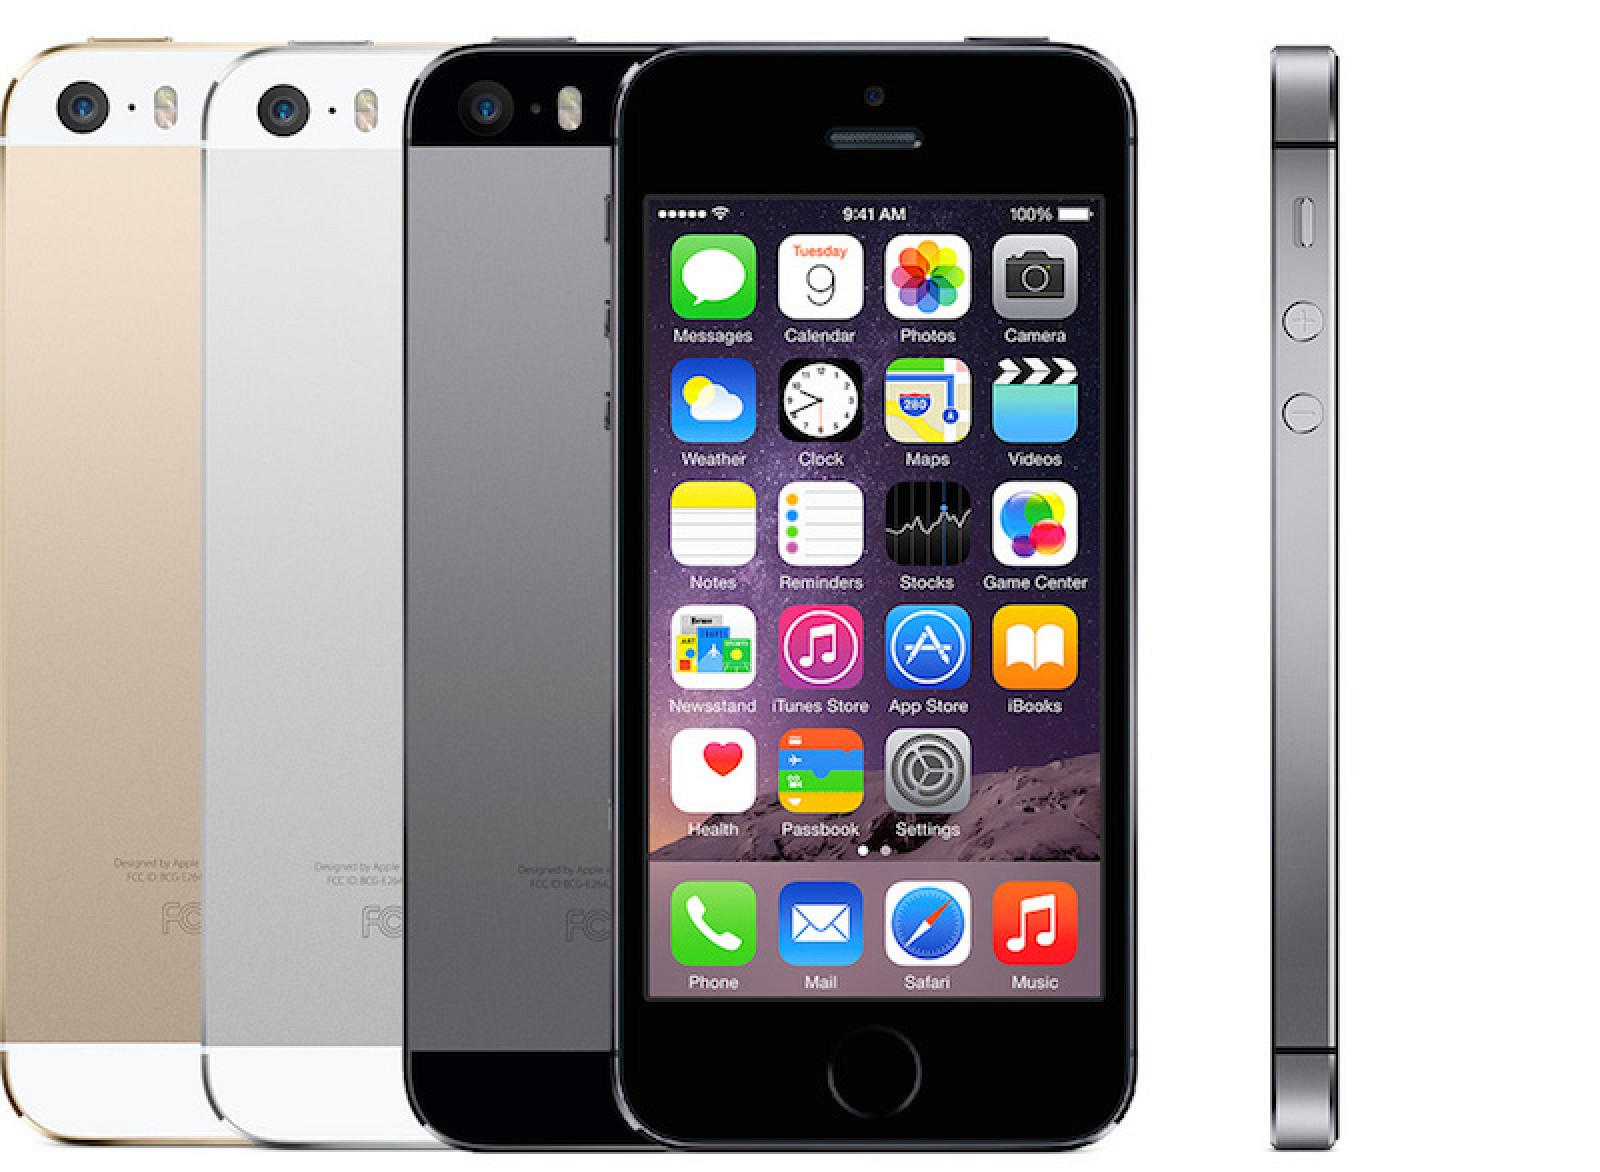 apple iphone 5 Apple iphone 5 smartphone with 400-inch 640x1136 display powered by 13ghz dual-core processor alongside 1gb of ram and 8-megapixel rear camera apple iphone 5 price.